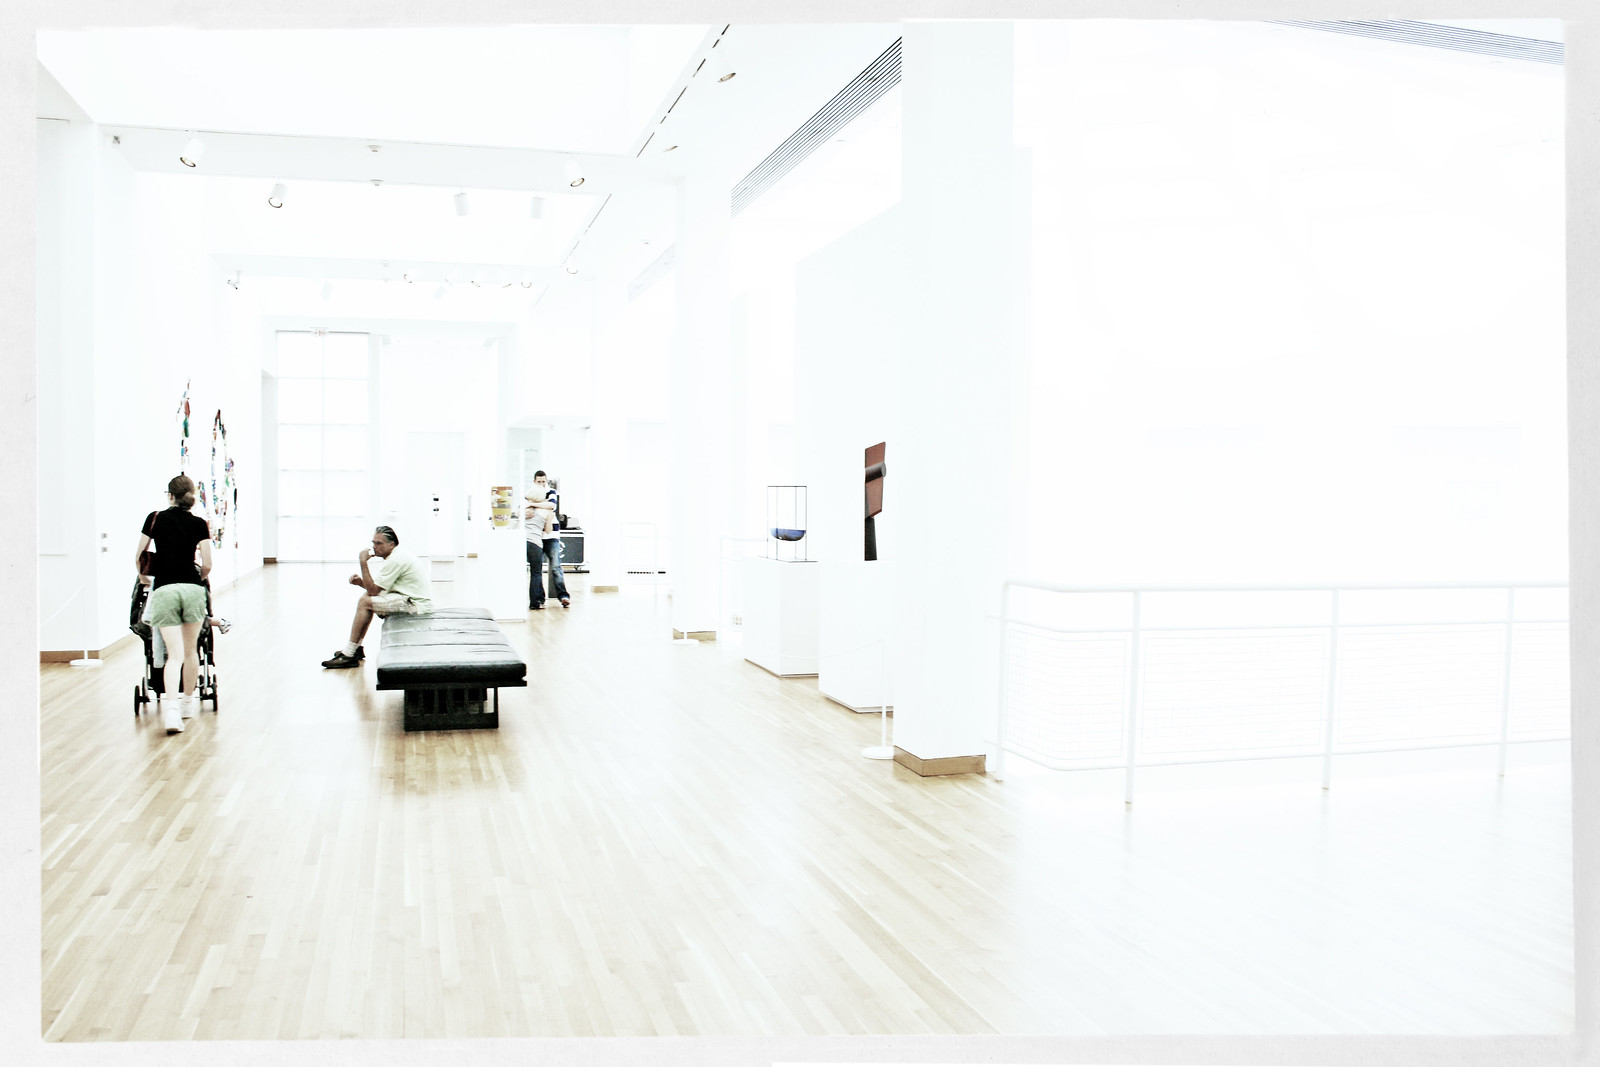 Stroller at the High Museum #3 and 1/2